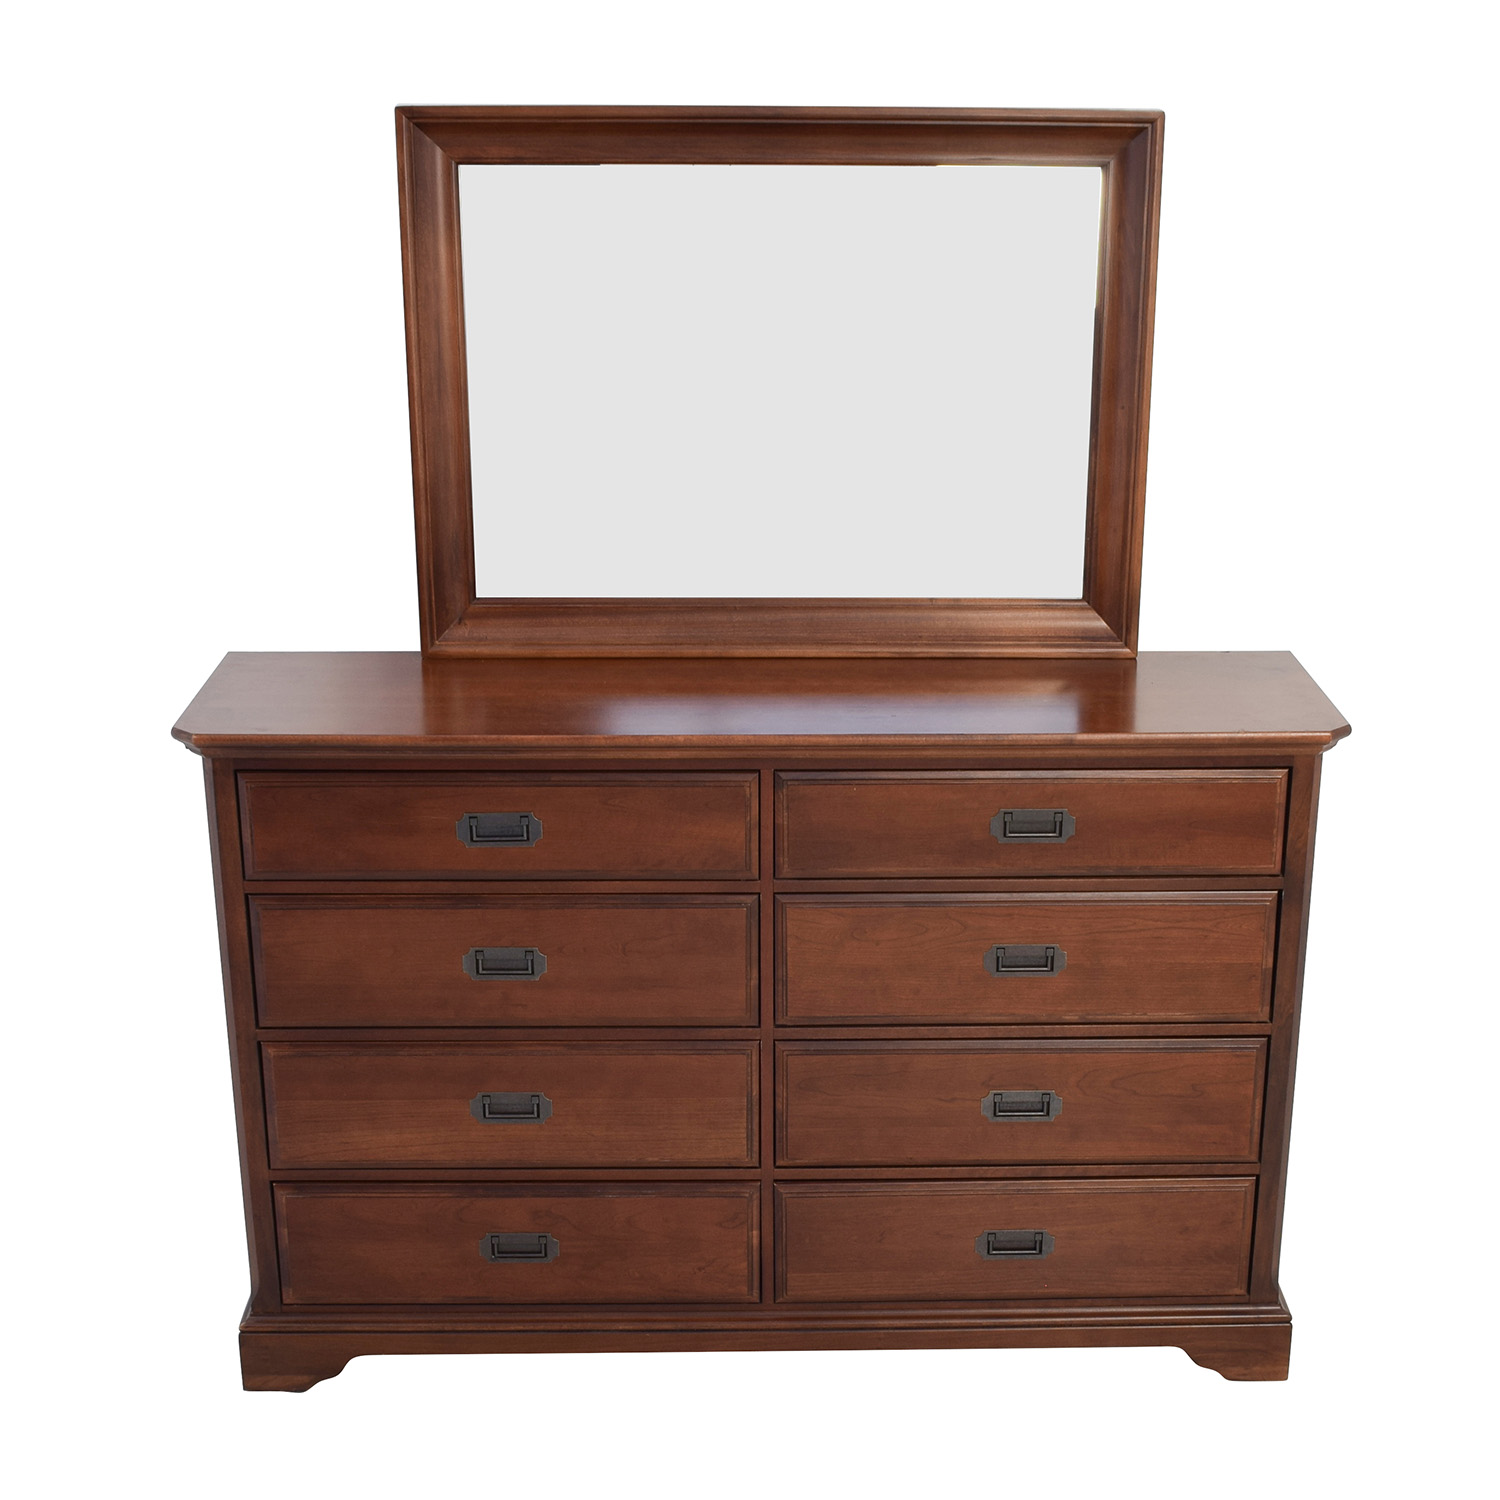 Vaughan Bassett Hardwood Dresser with Mirror used